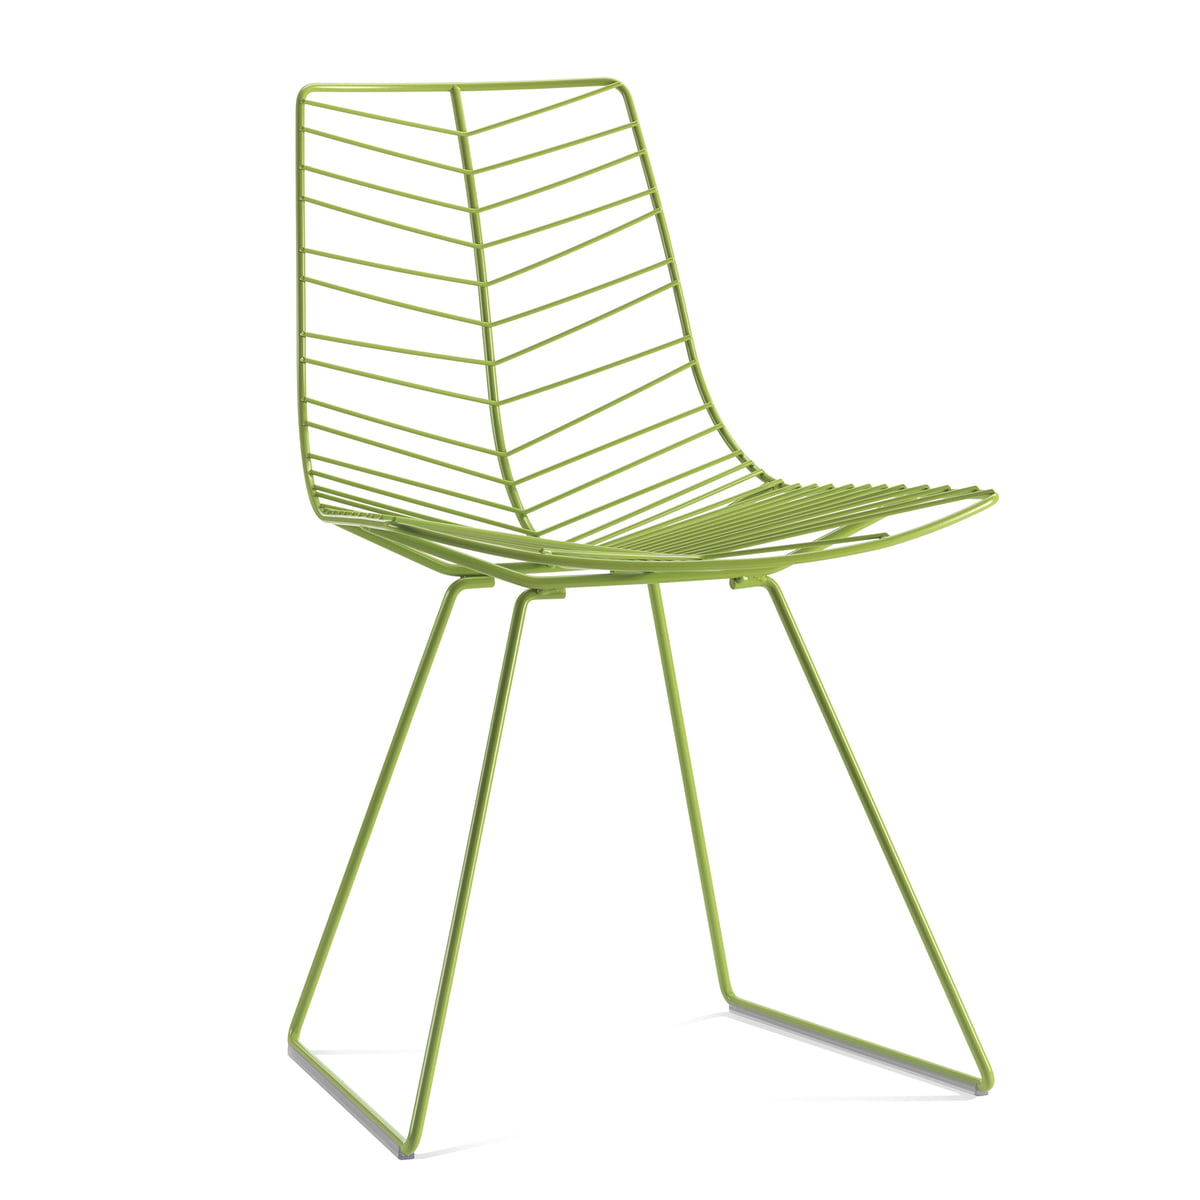 Leaf chair | Arper | Shop